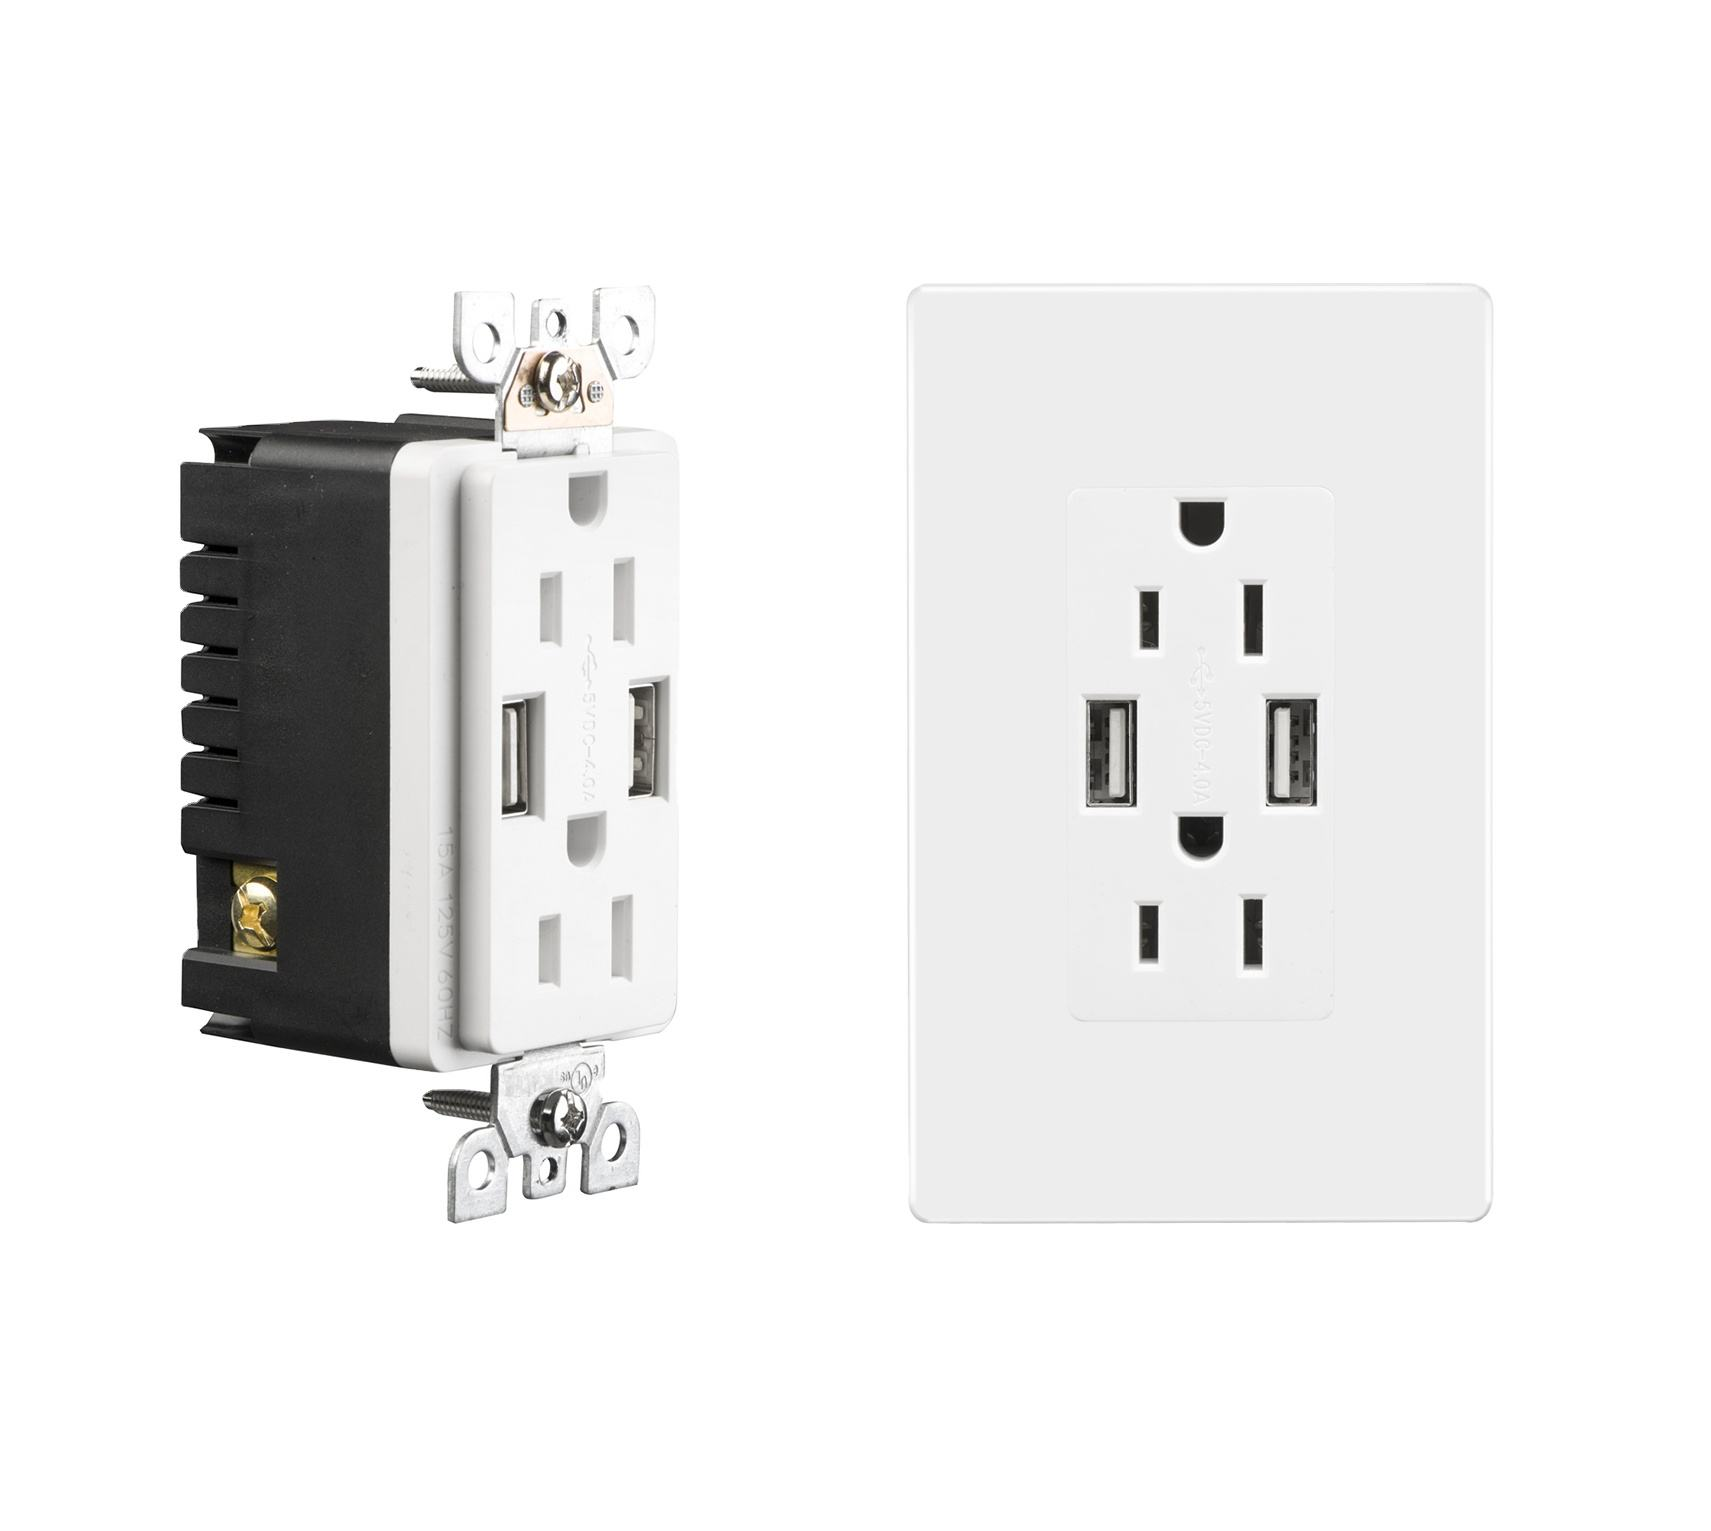 High speed dual 15A 125V socket with usb charger wall outlet